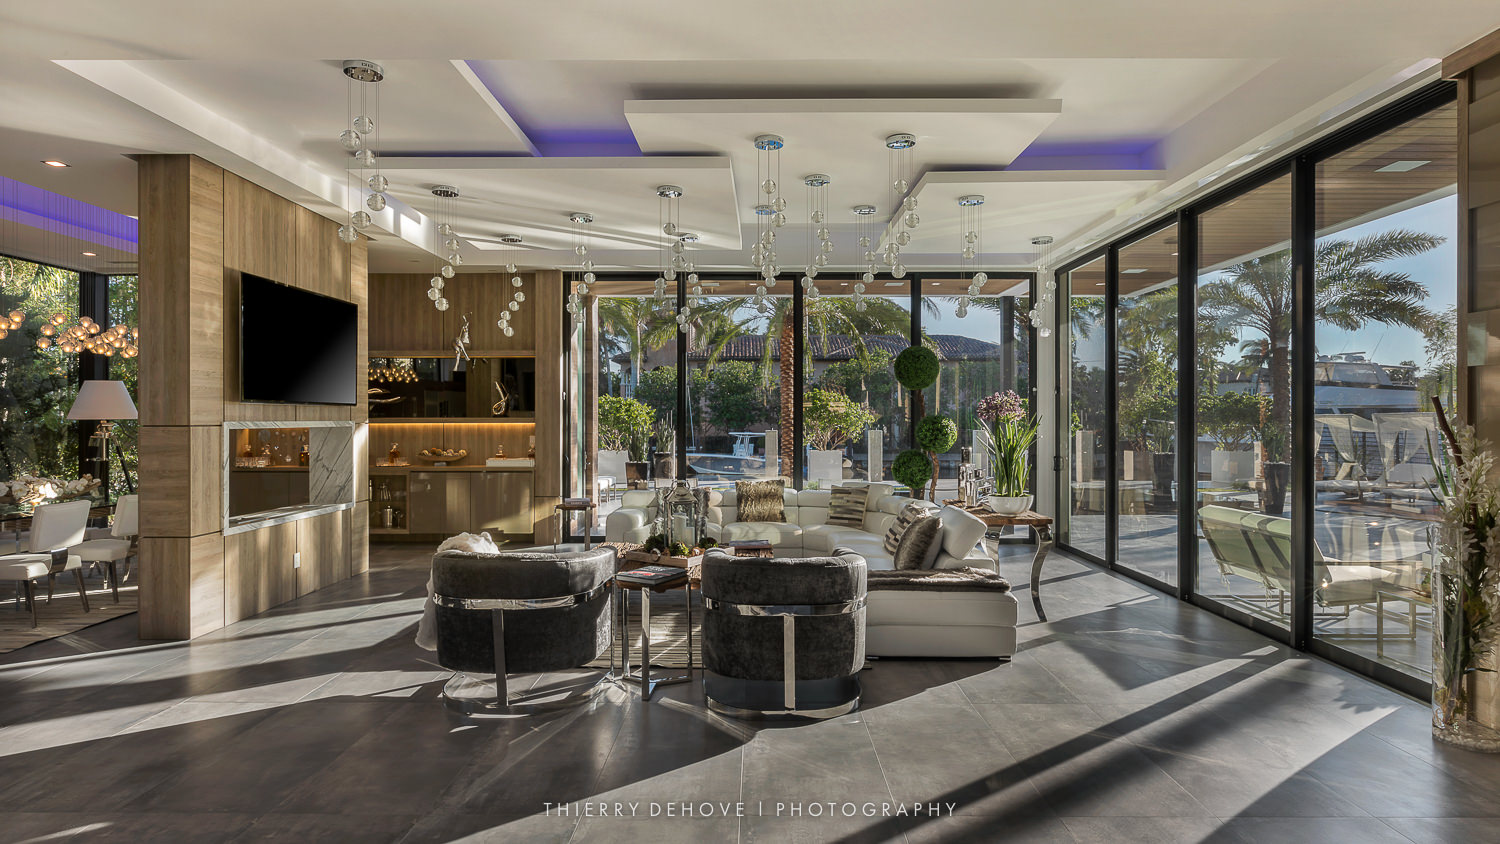 Luxury Interior Designs: Luxury Interior Designs In Florida